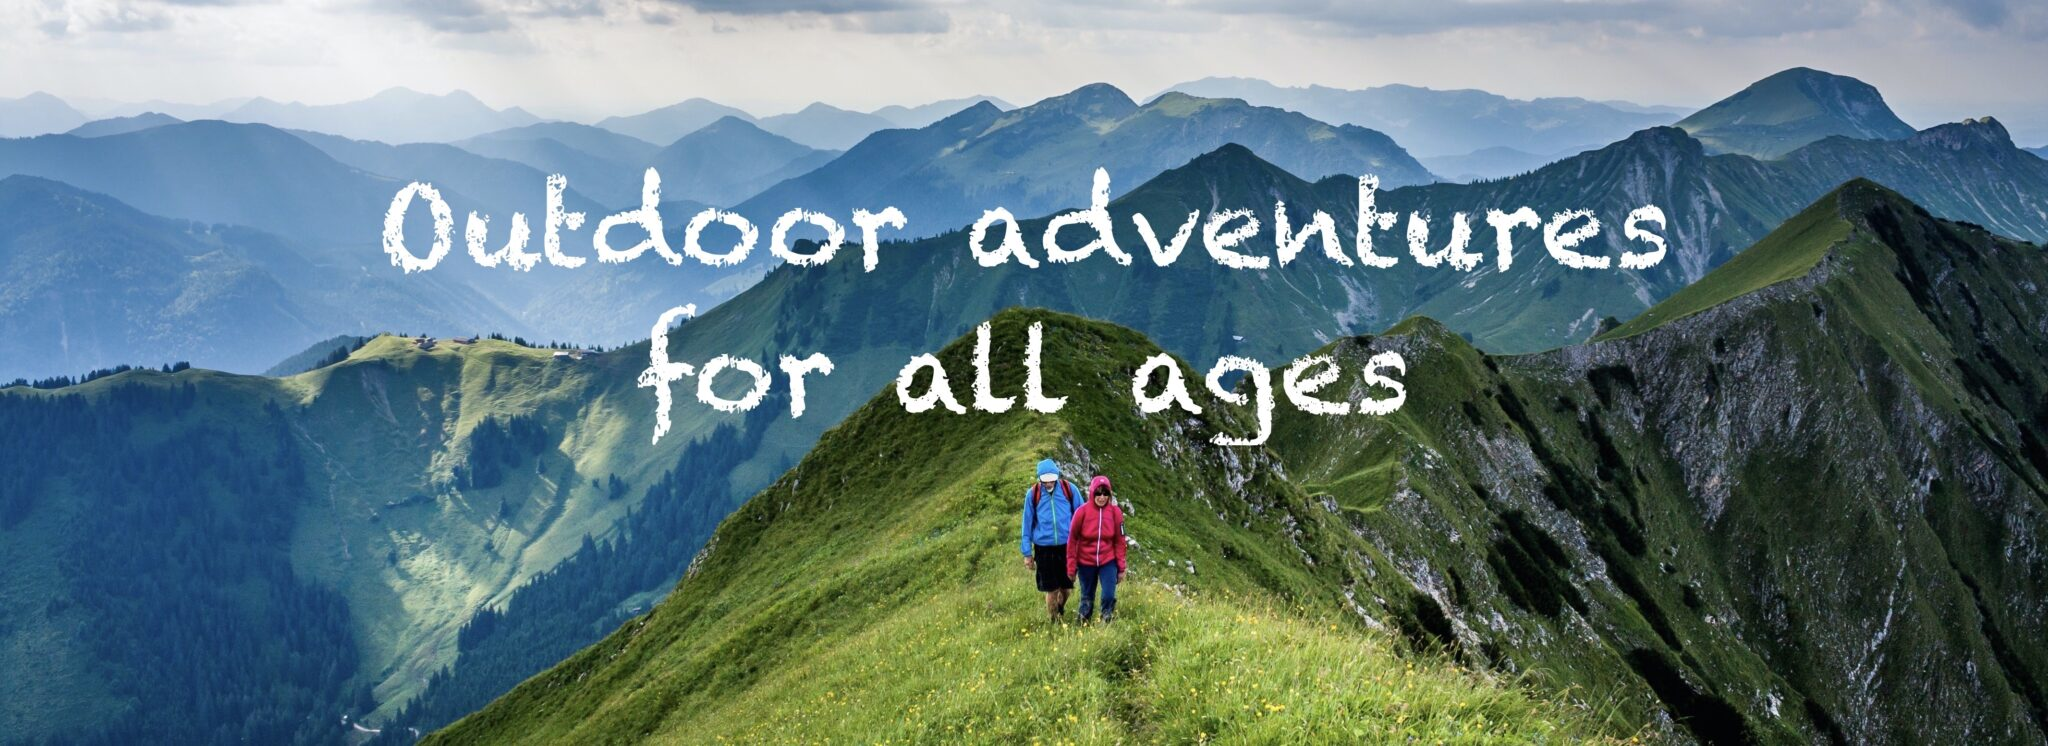 Outdoor adventures for all ages